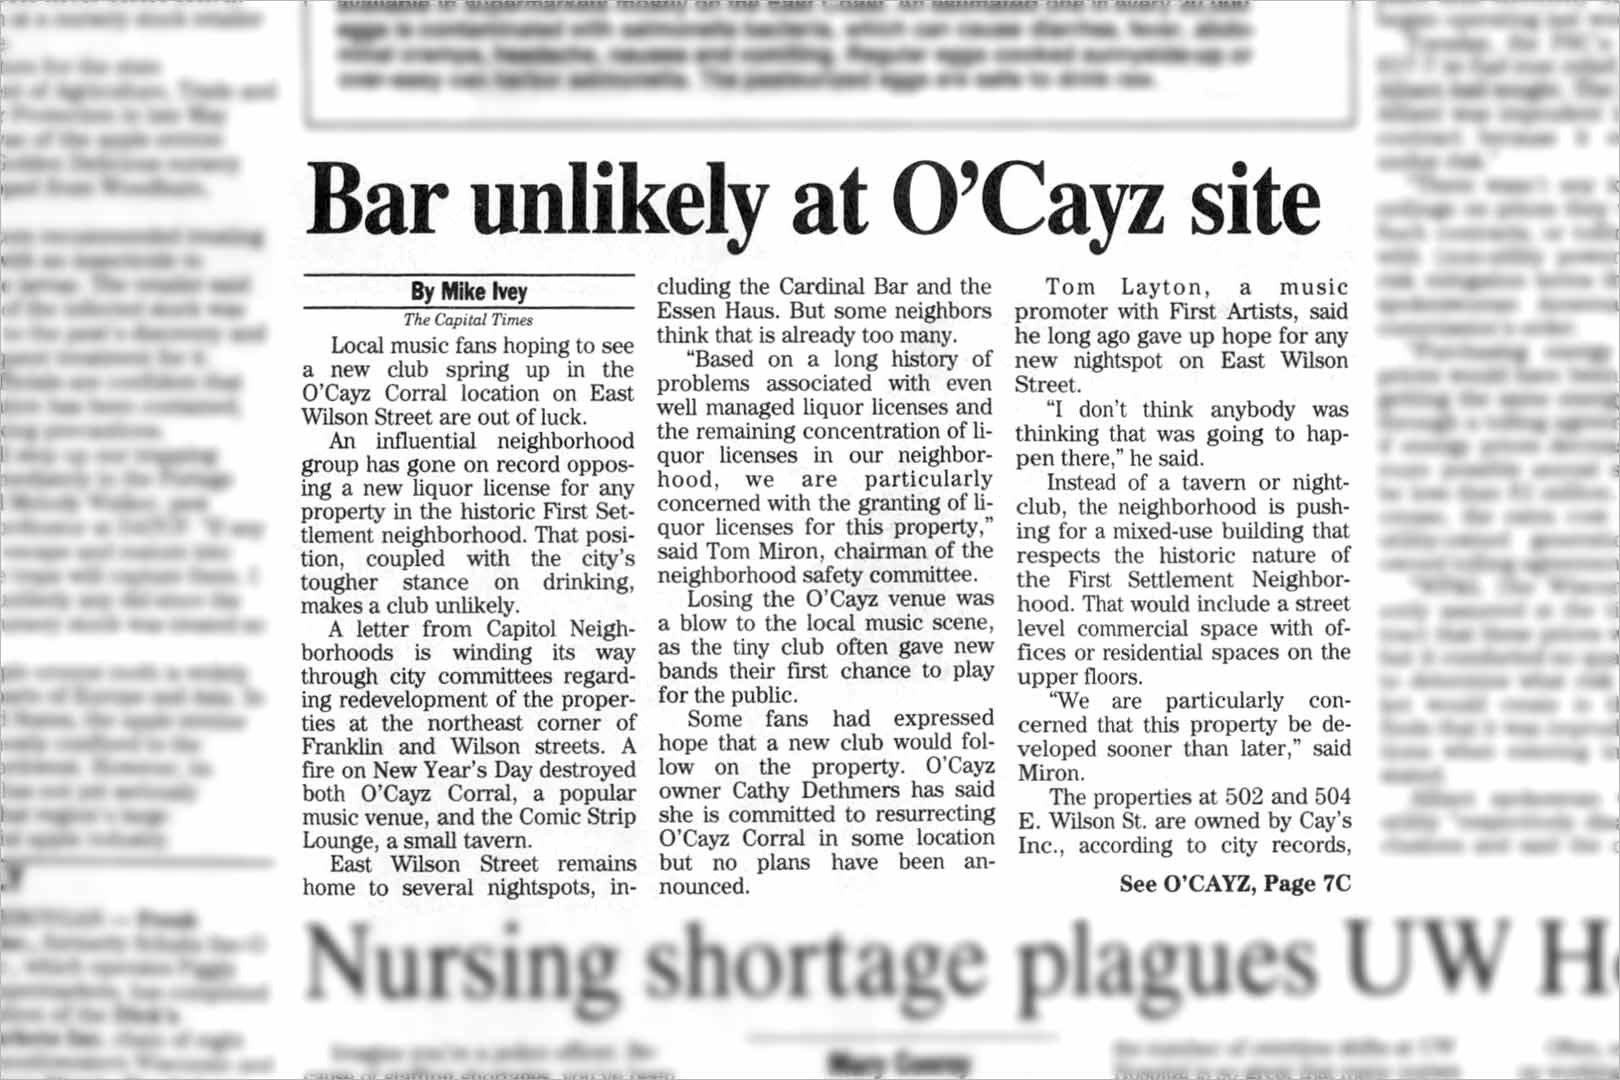 Bar unlikely at O'Cayz site